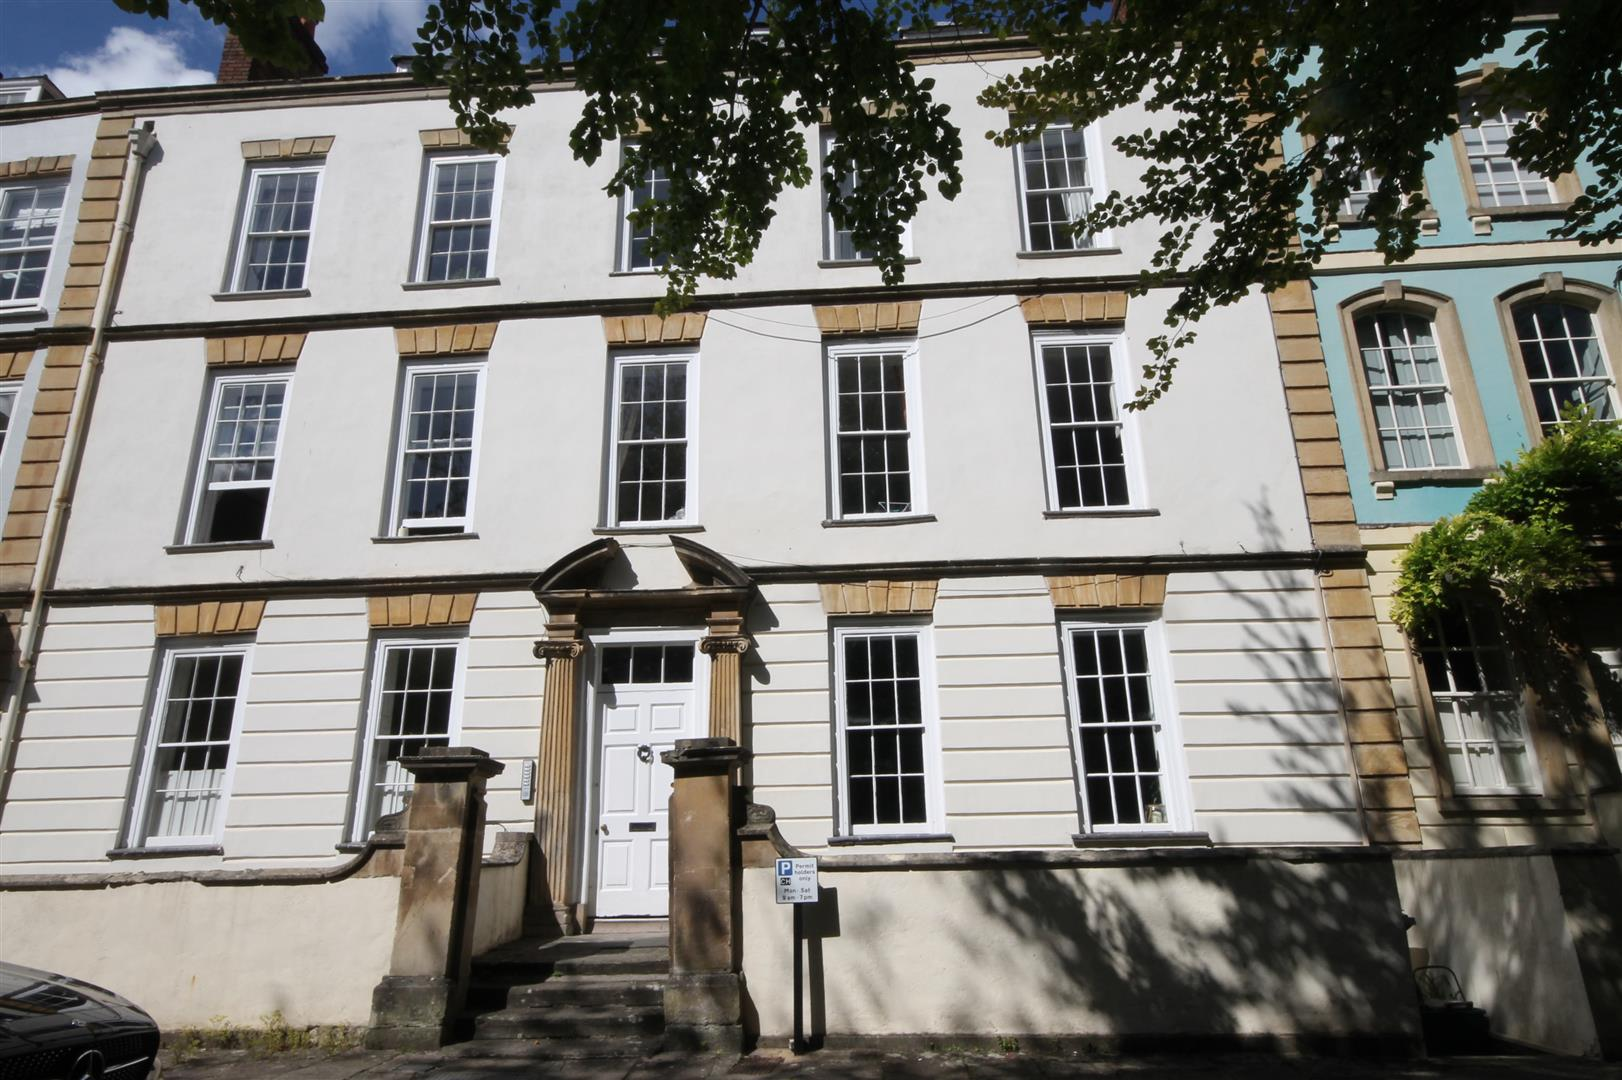 4 bed flat to rent in Dowry Square, Bristol - Property Image 1